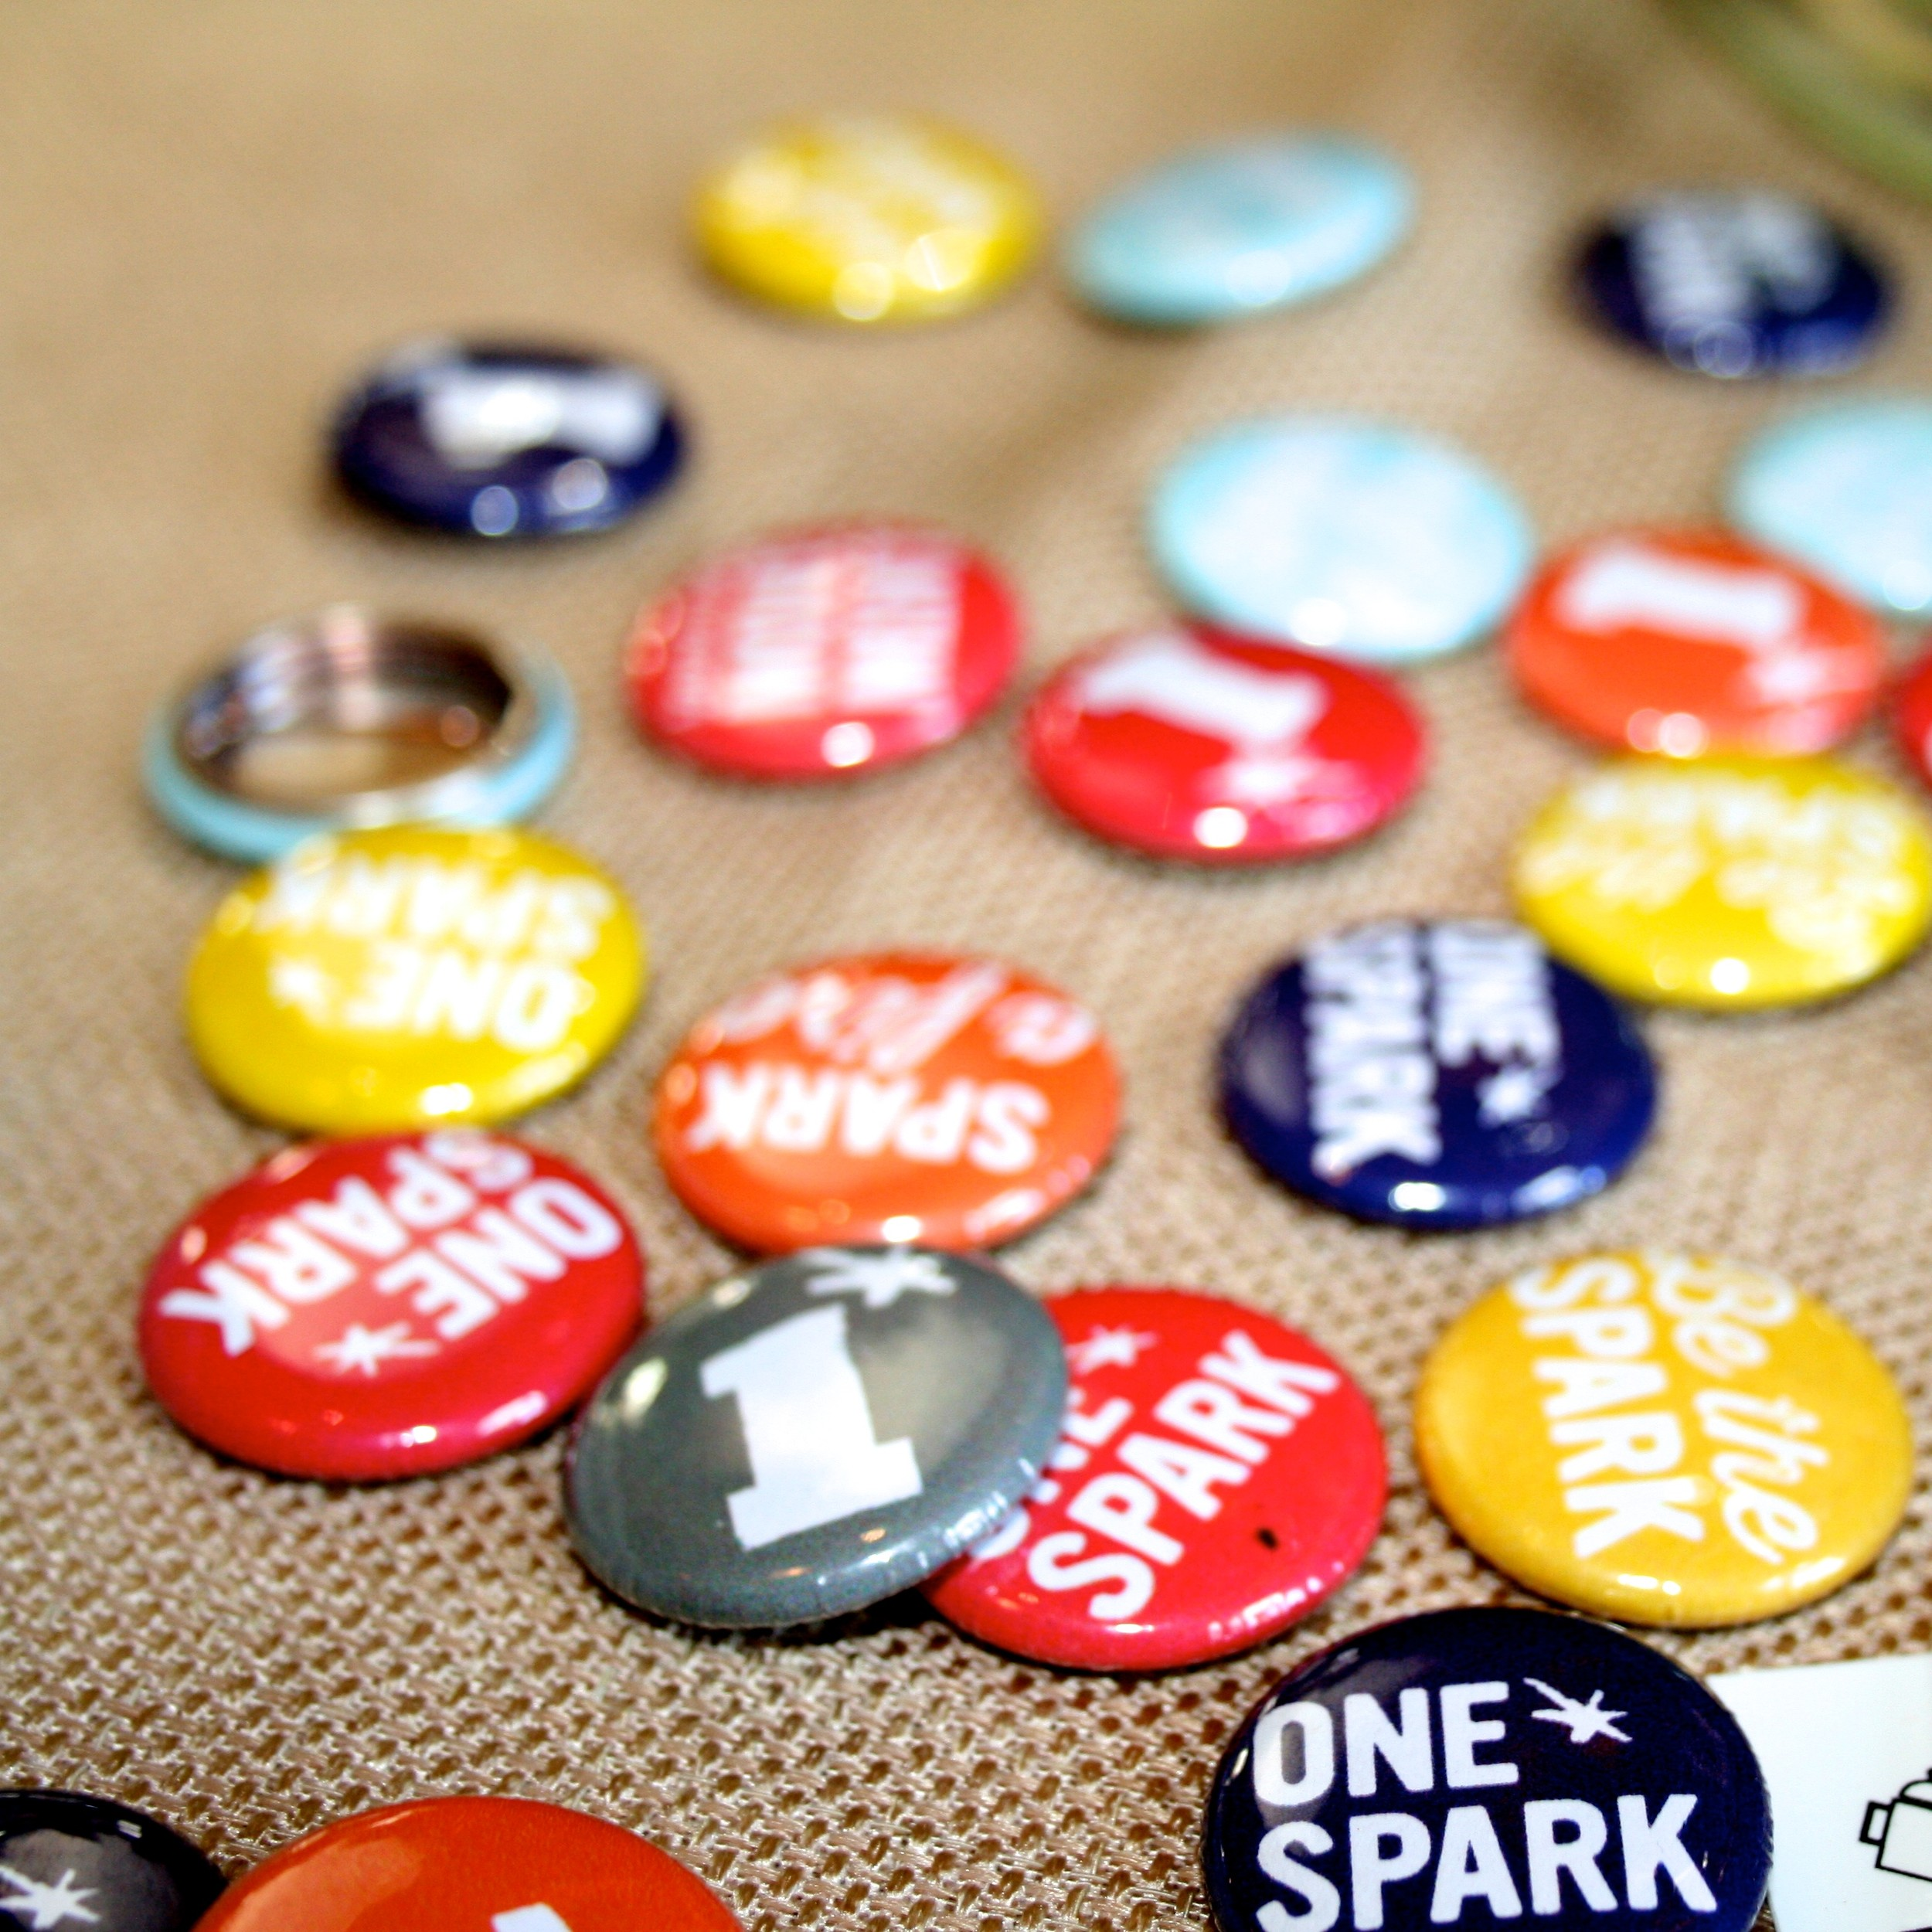 Some of the pins passed out to bring awareness to One Spark.